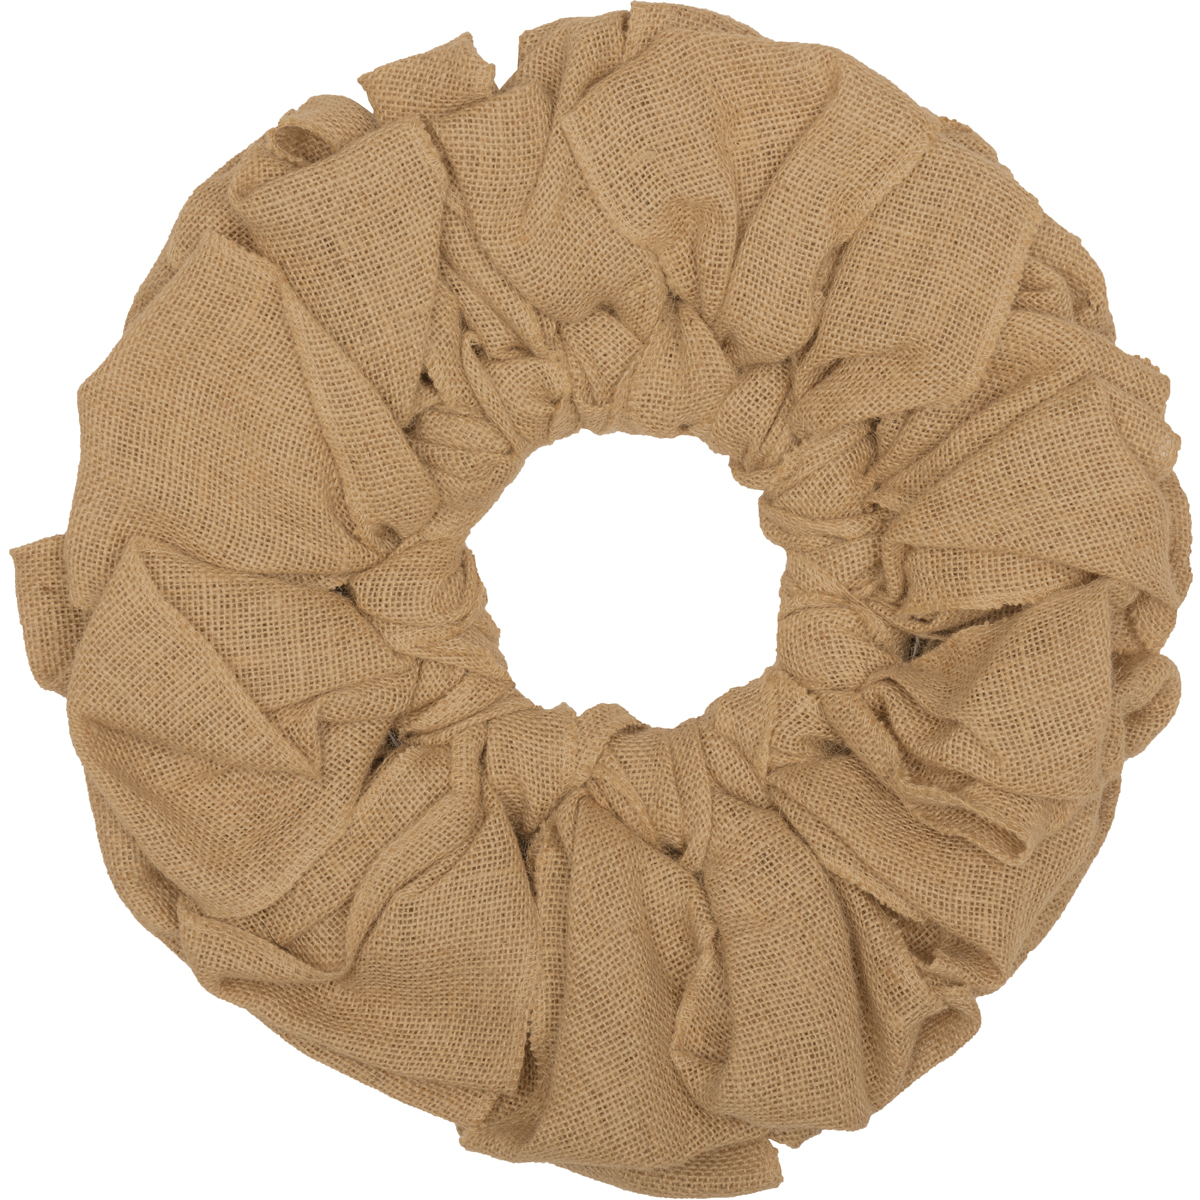 "Natural Tan Farmhouse Christmas Decor Burlap Wreath Twine Jute Metal Frame Round 15"" Diameter Wreath"